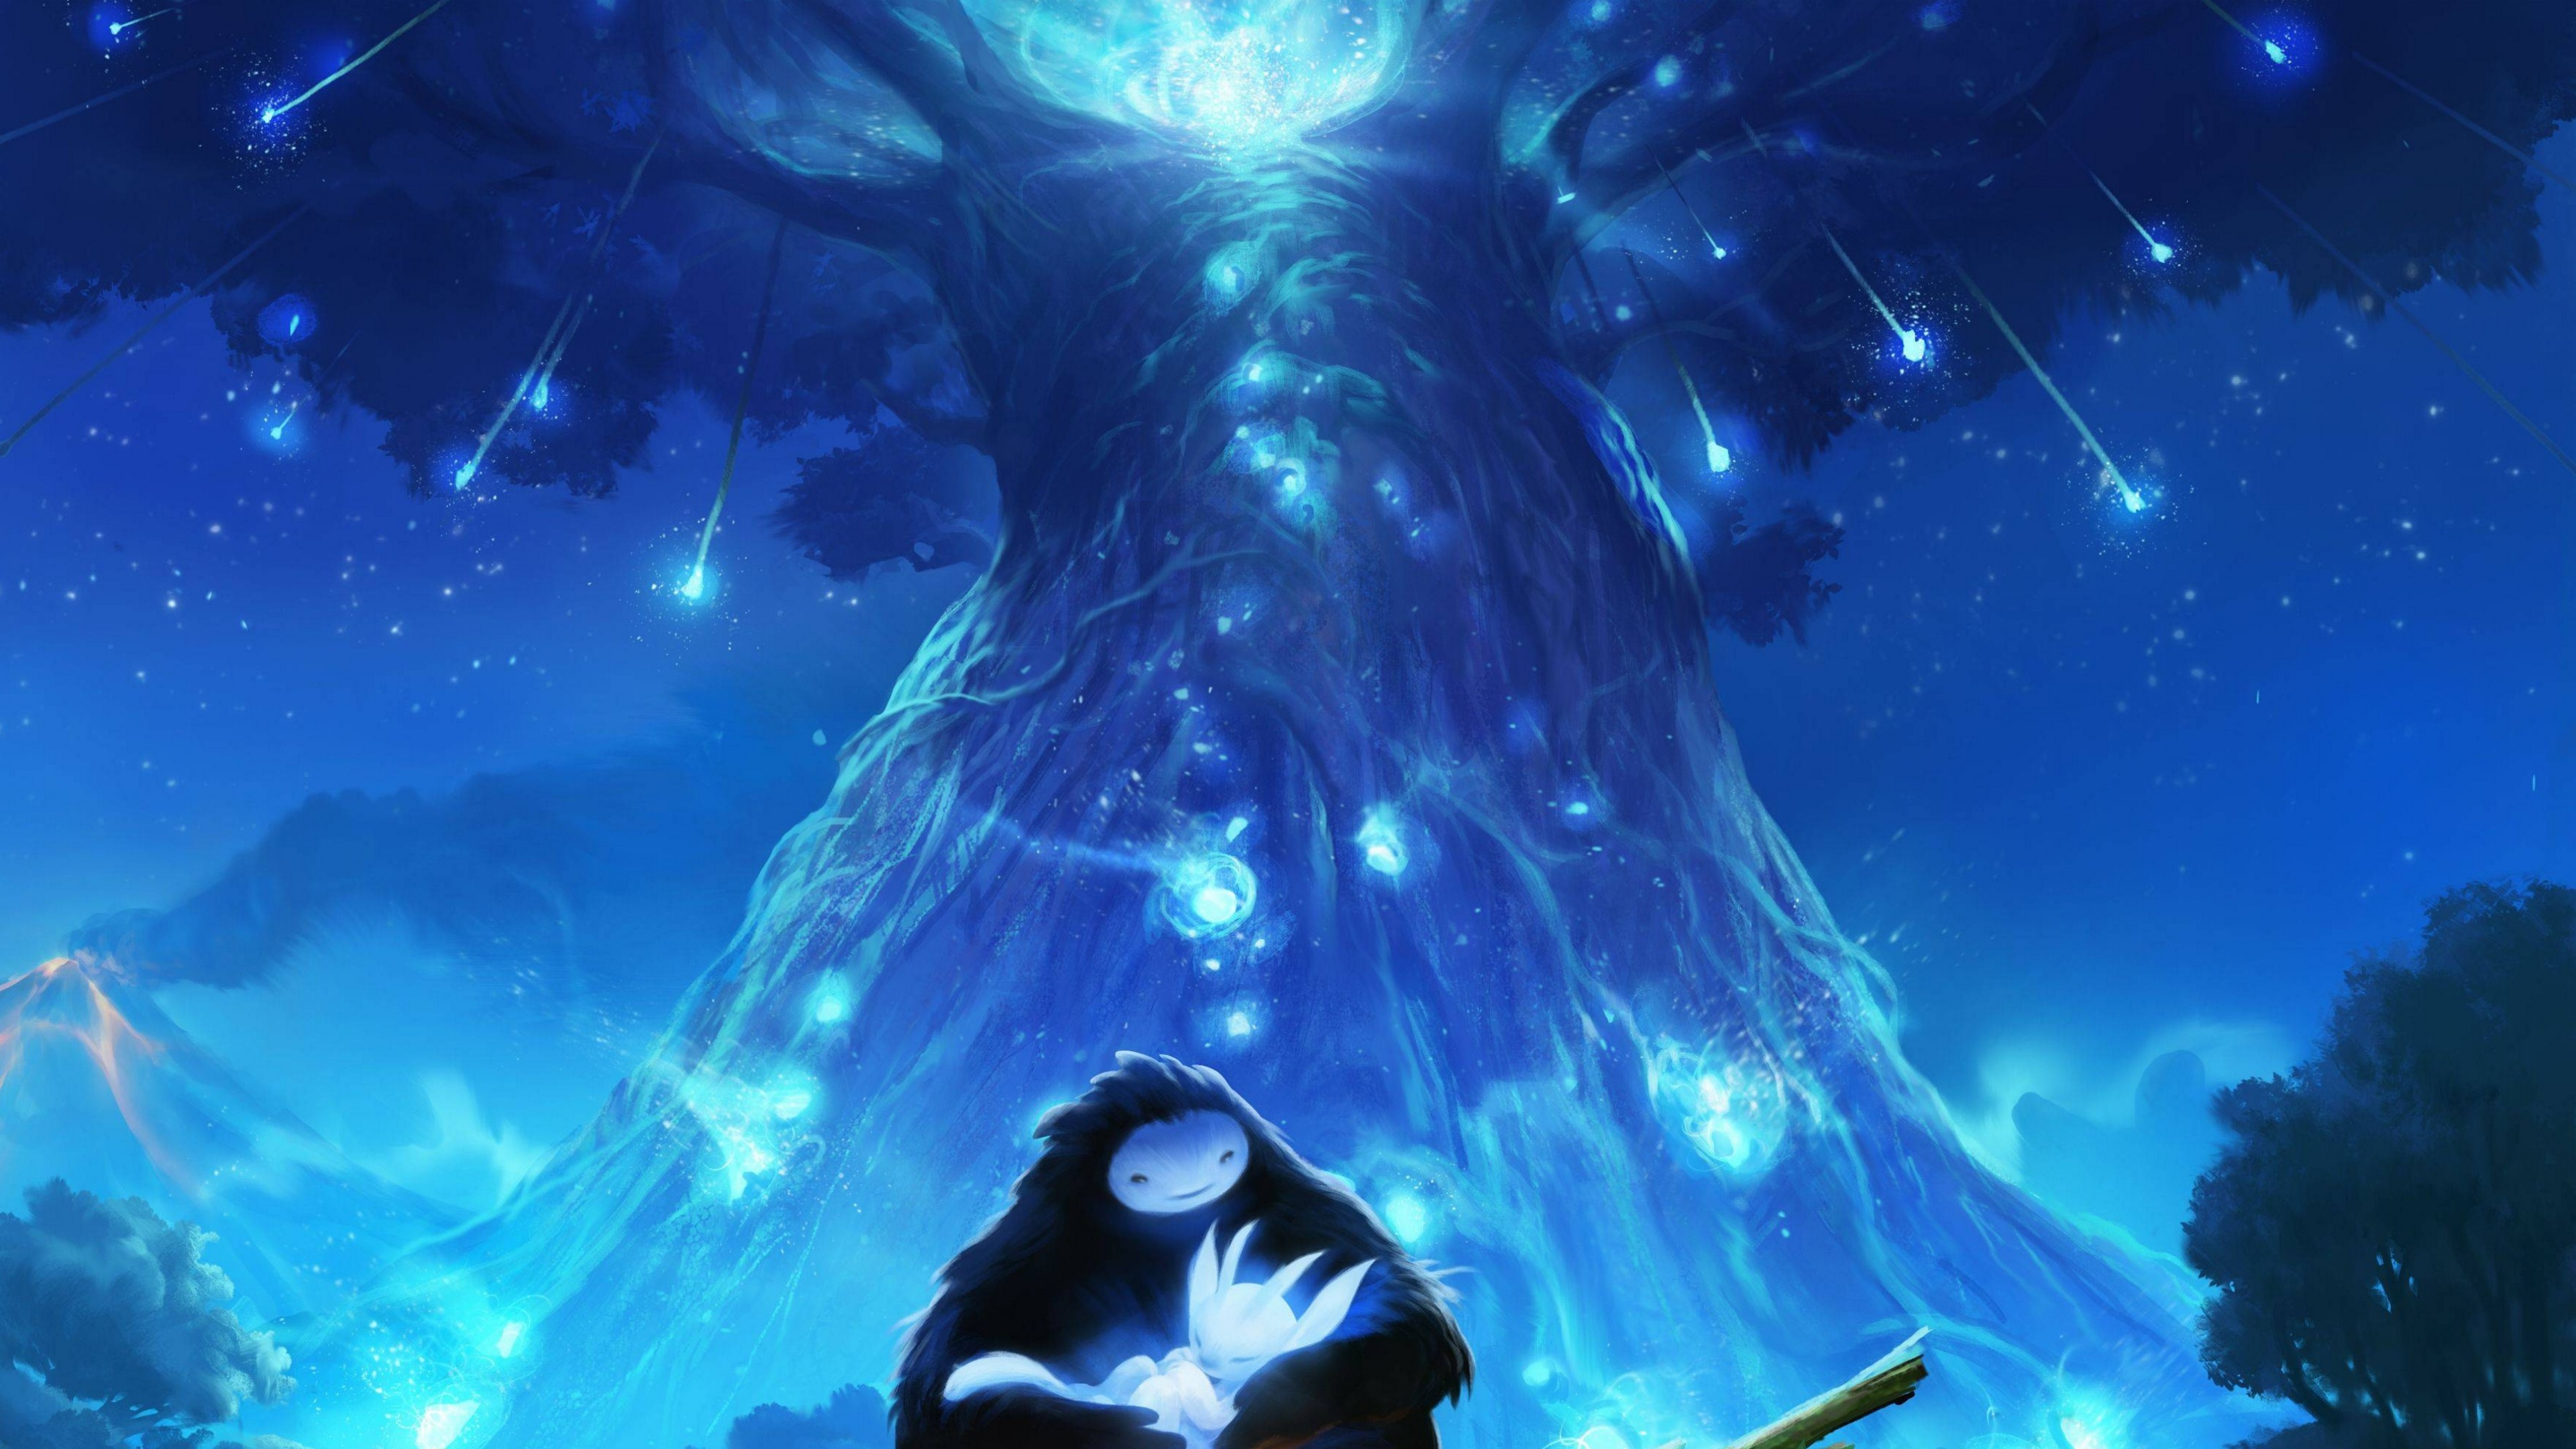 Wallpaper Ori And The Blind Forest Gdc Awards Pc